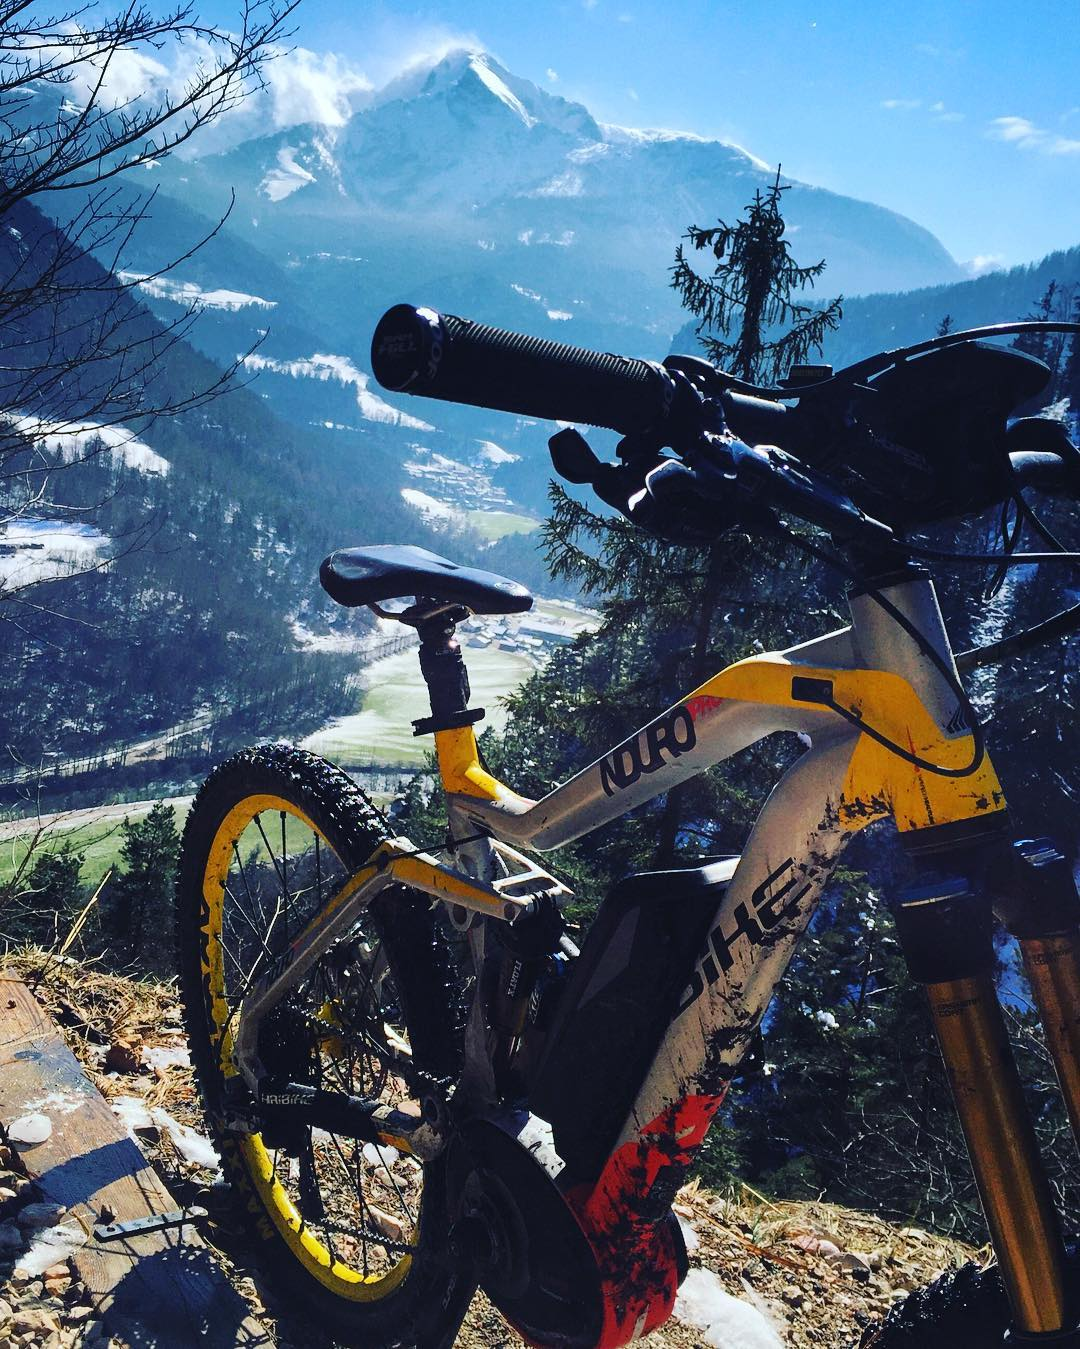 The higher you get, the better the view! #Haibike #NDURO #xduro #MTB #mountains #eperformance #mountainbike